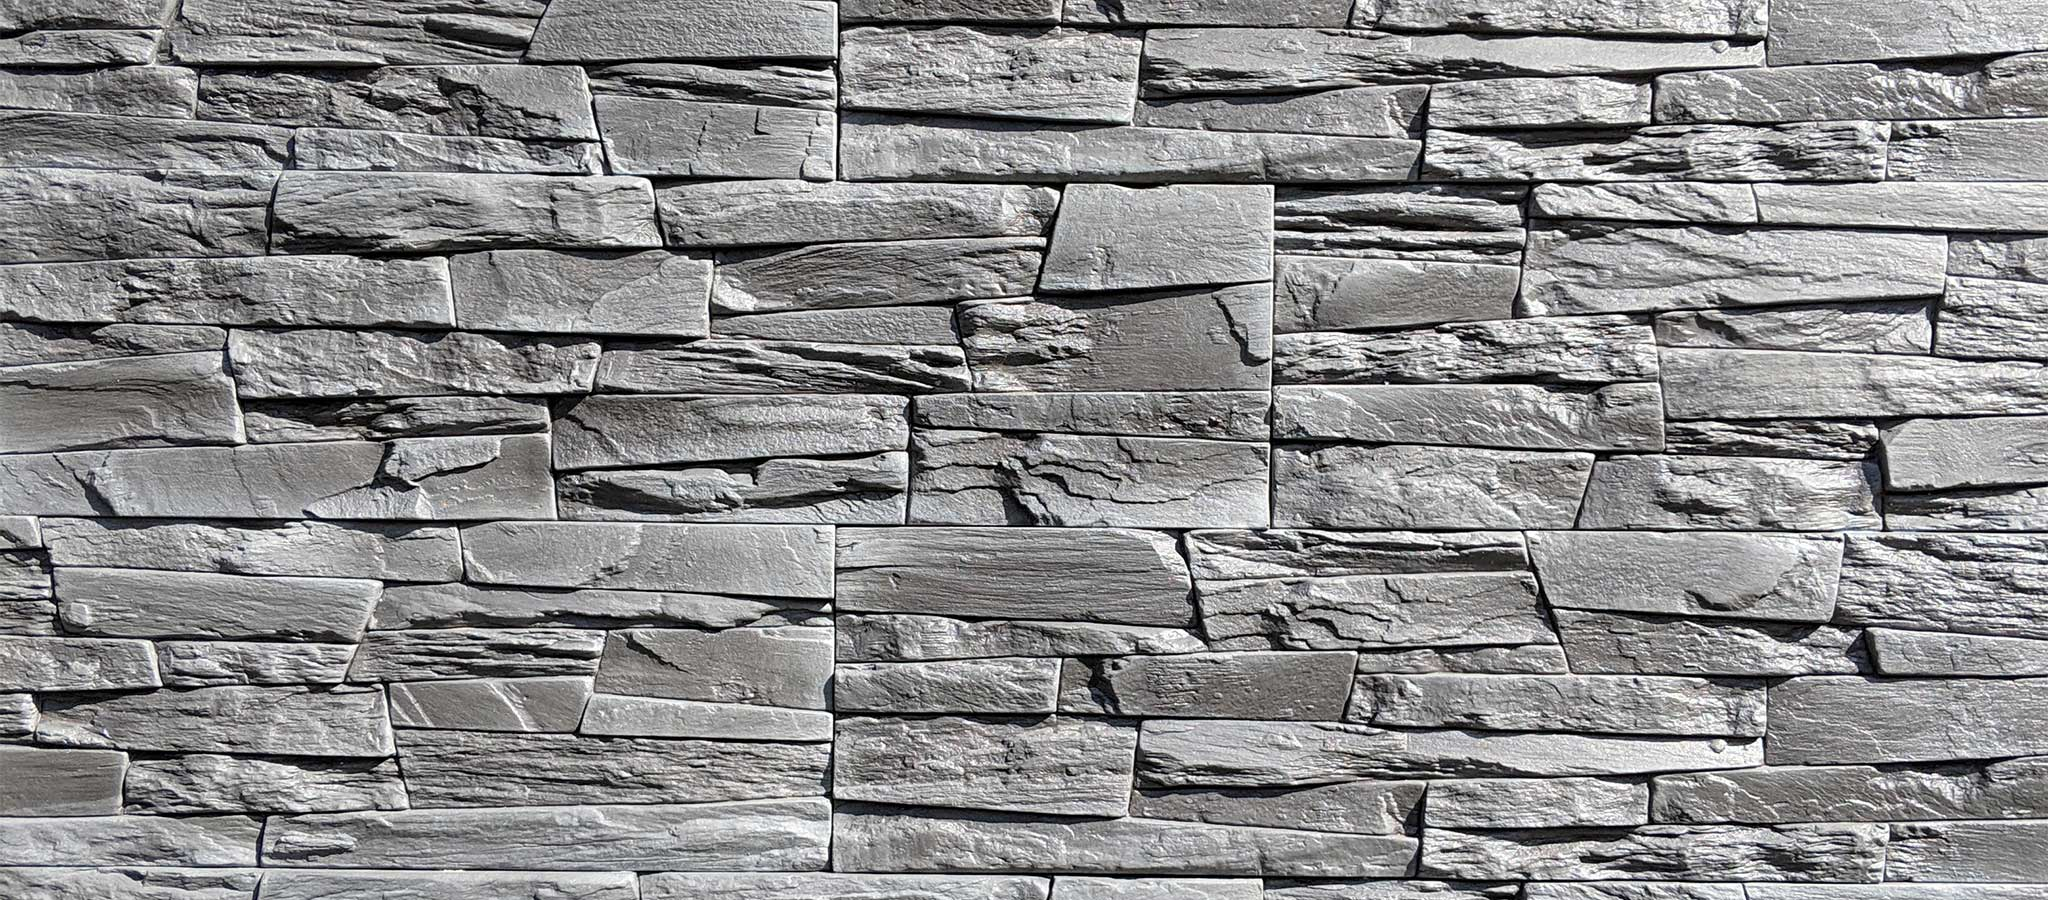 Dedicated Roofing & Exteriors - Stone Siding Professional Roofing Calgary Roof Repair Roof Replacement Roof Inspection